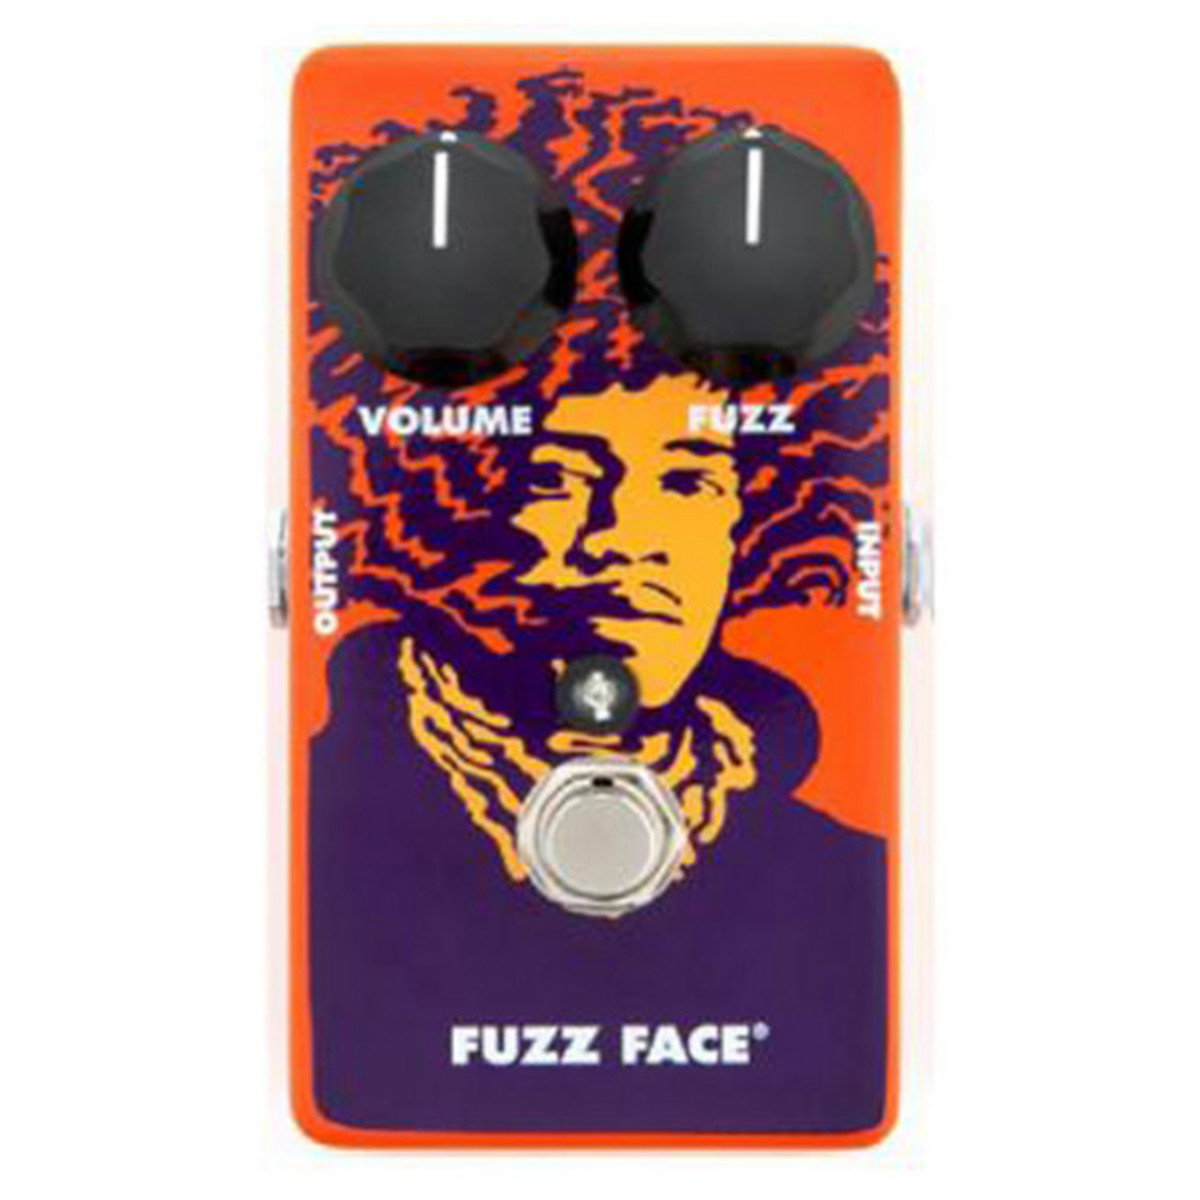 Disc Ltd Ed Jimi Hendrix 70th Anniversary Fuzz Face By Jim Dunlop Jimmy Guitar Effect Schematic Diagram Limited Edition Loading Zoom